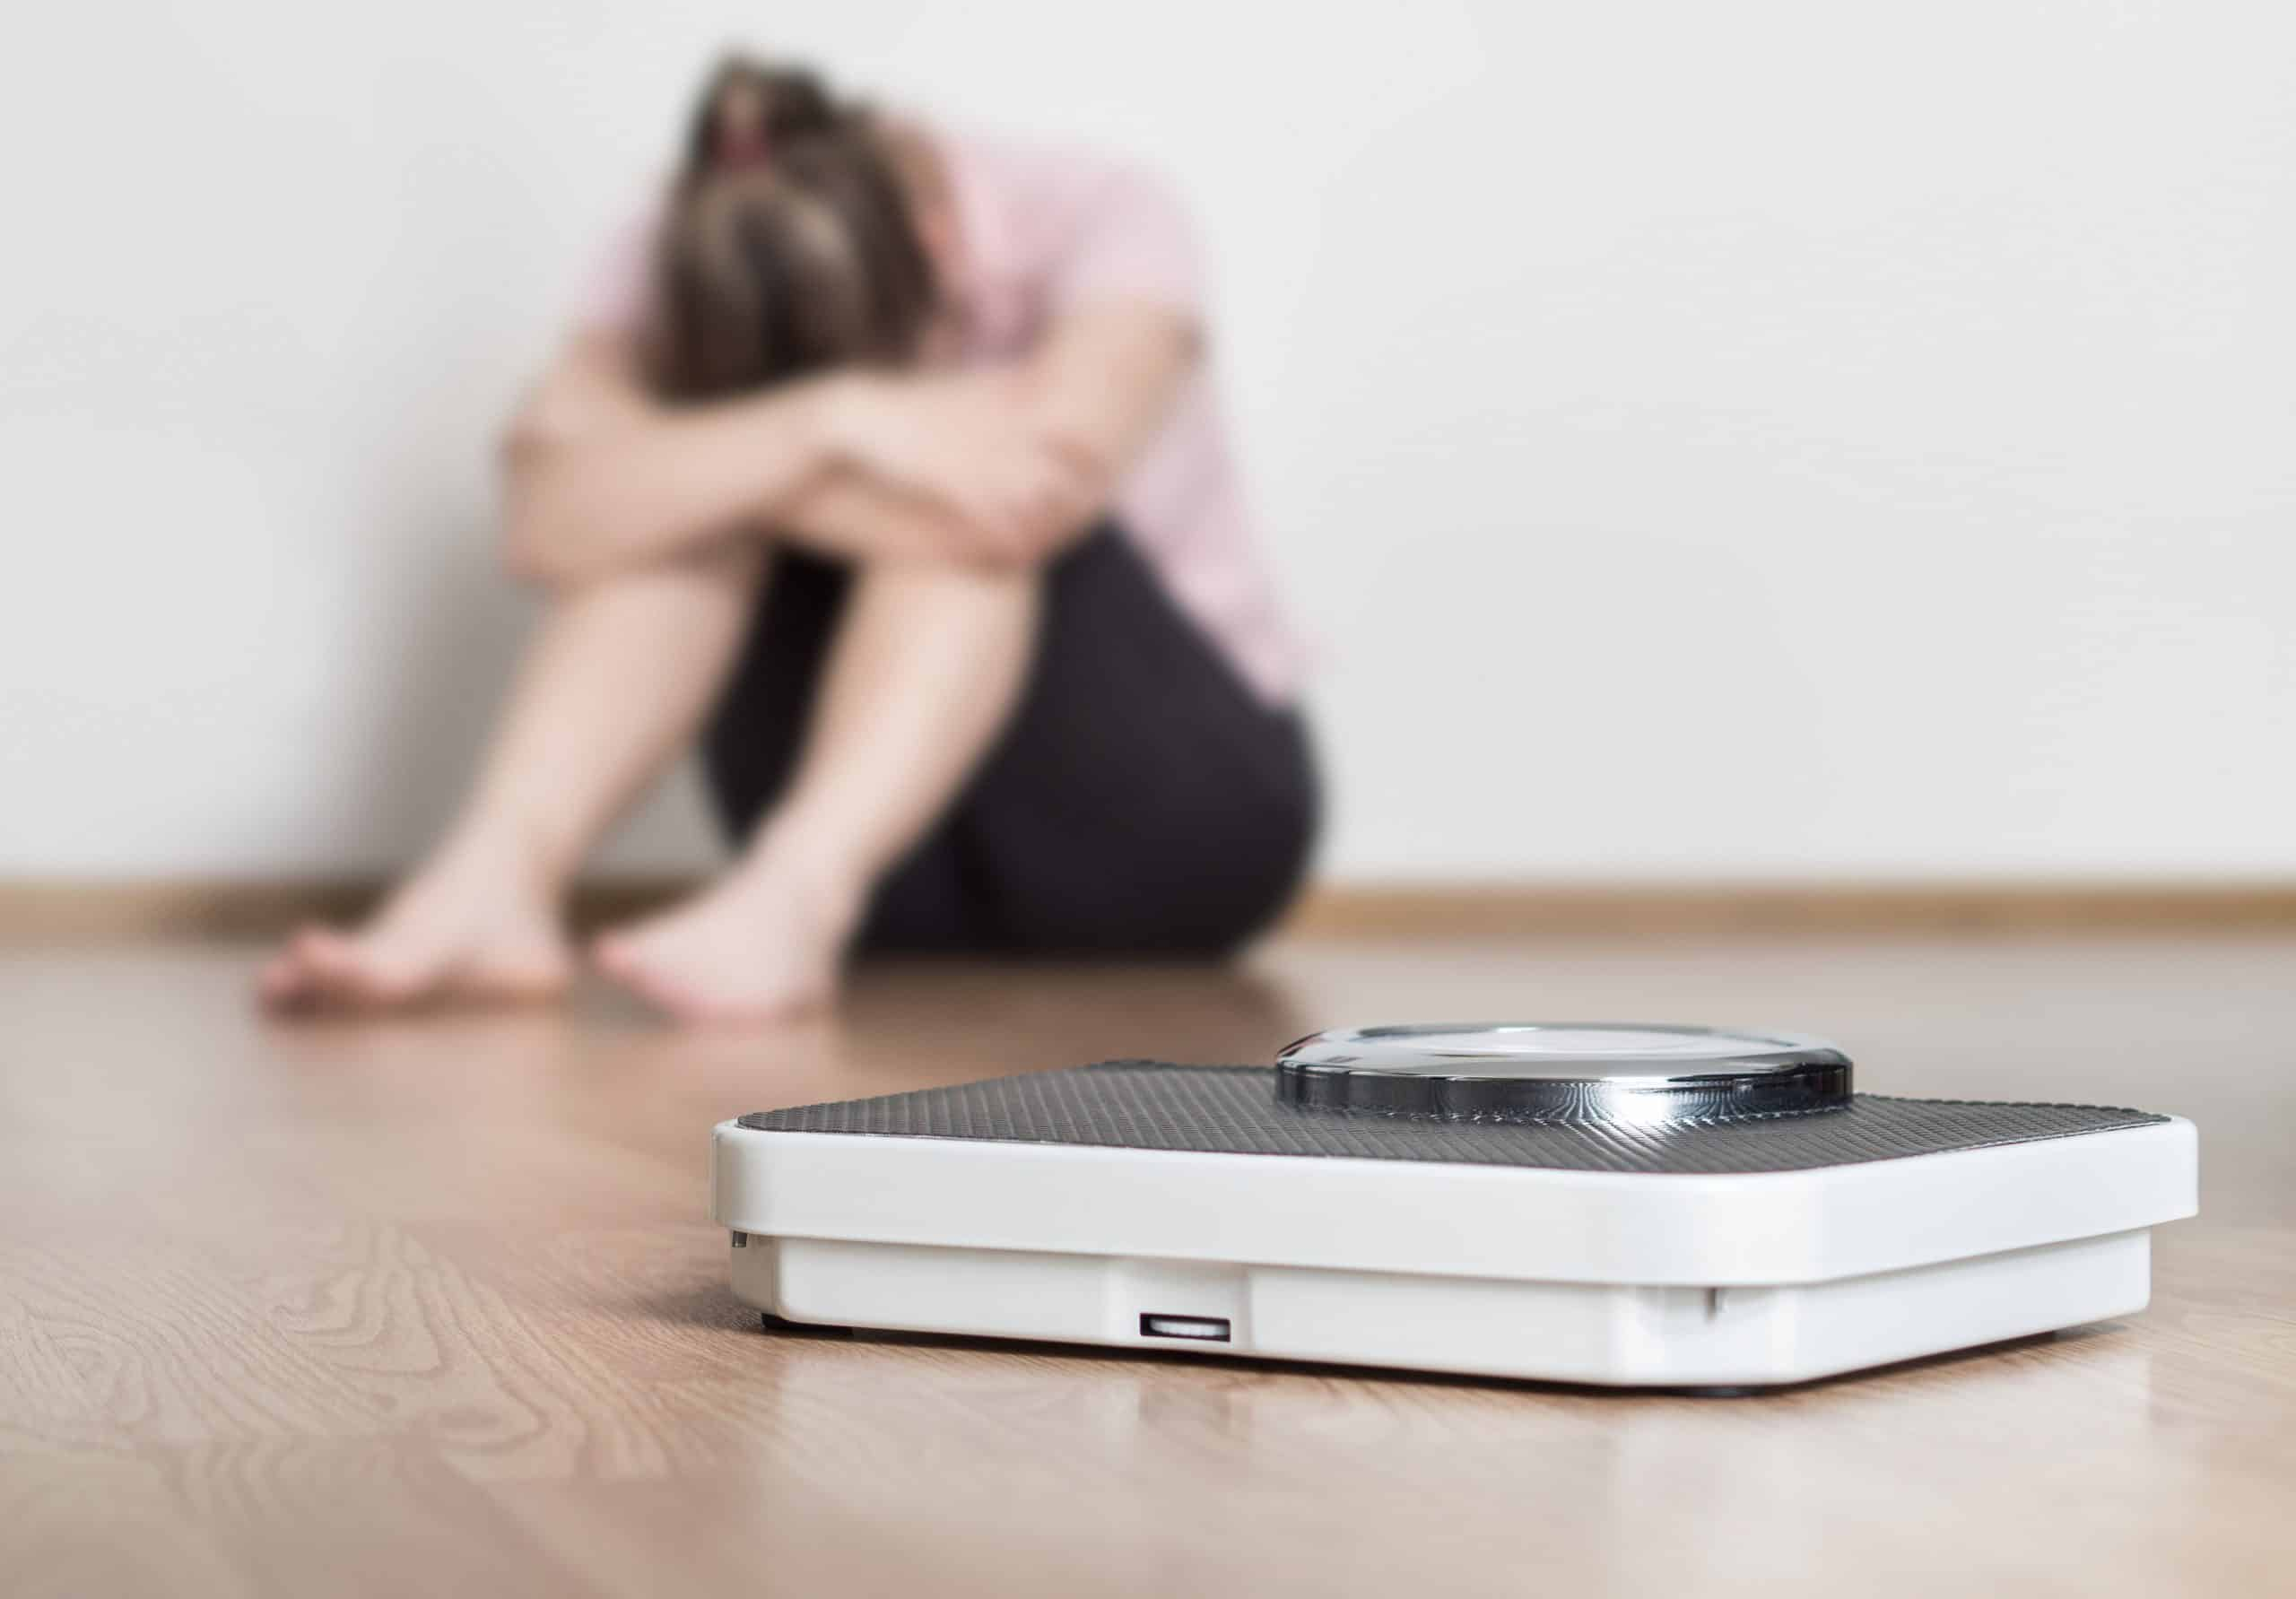 Woman with an eating disorder who is afraid of the weighing herself